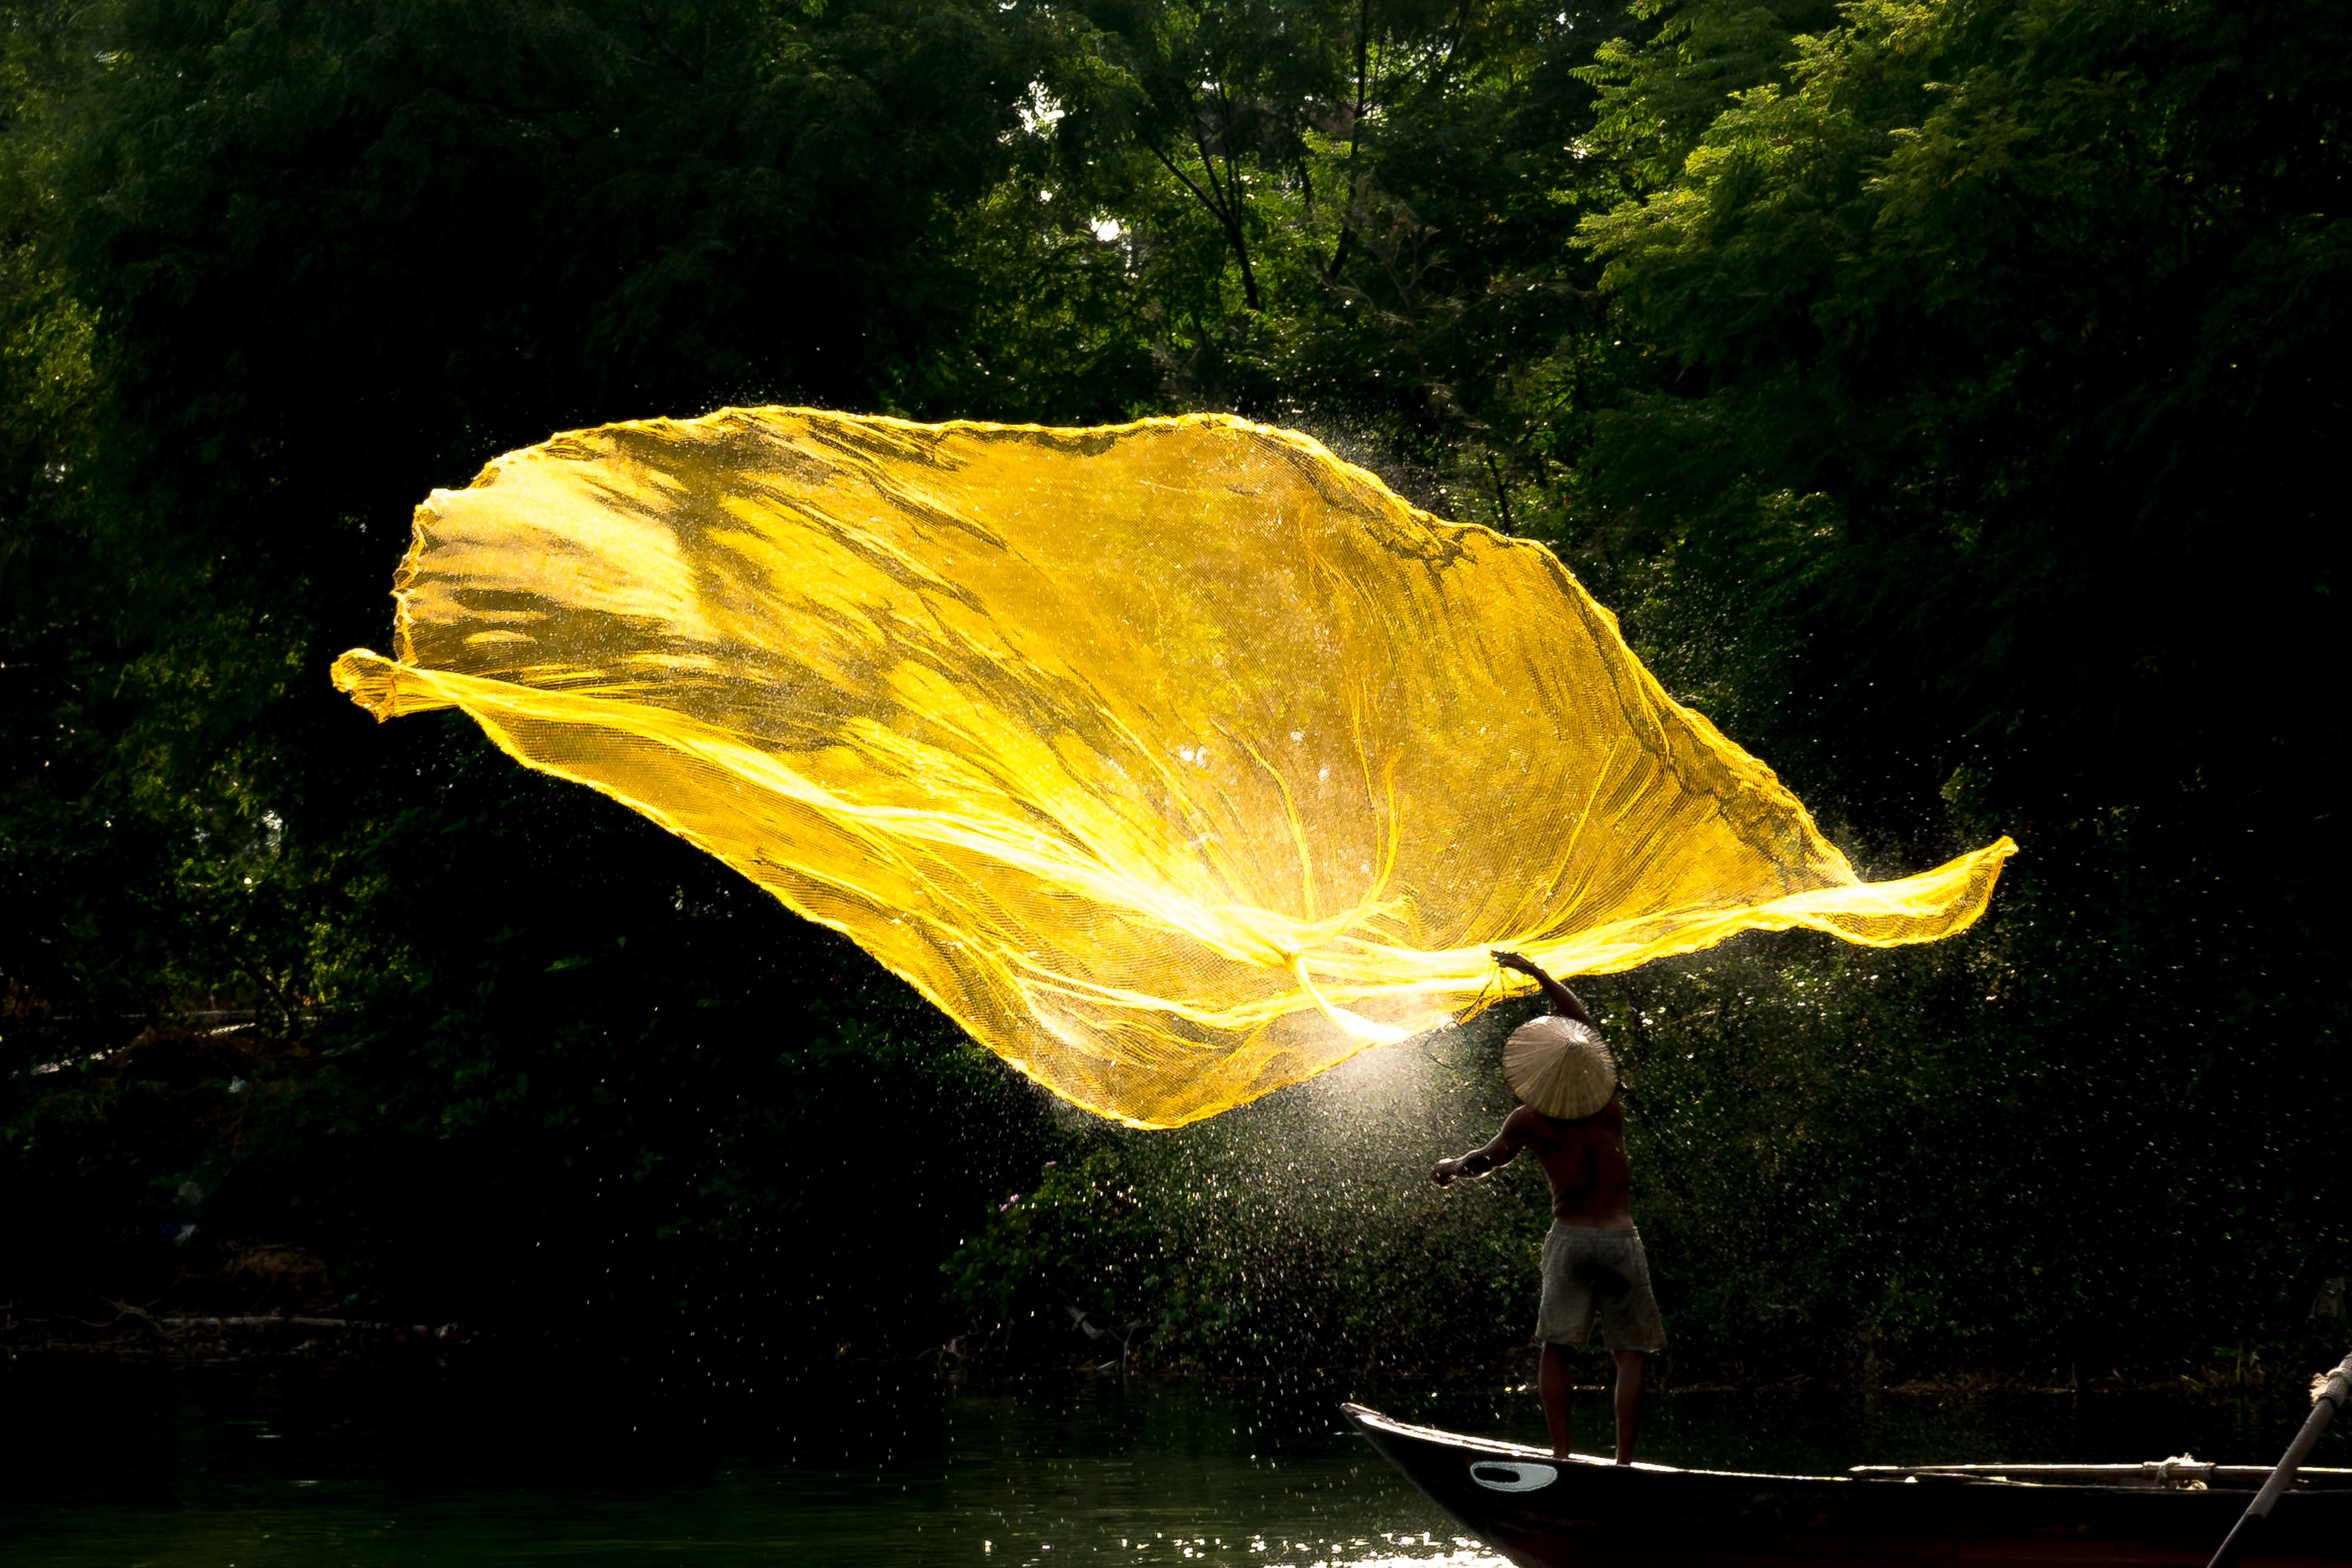 person throwing yellow fishing net above body of water at daytime